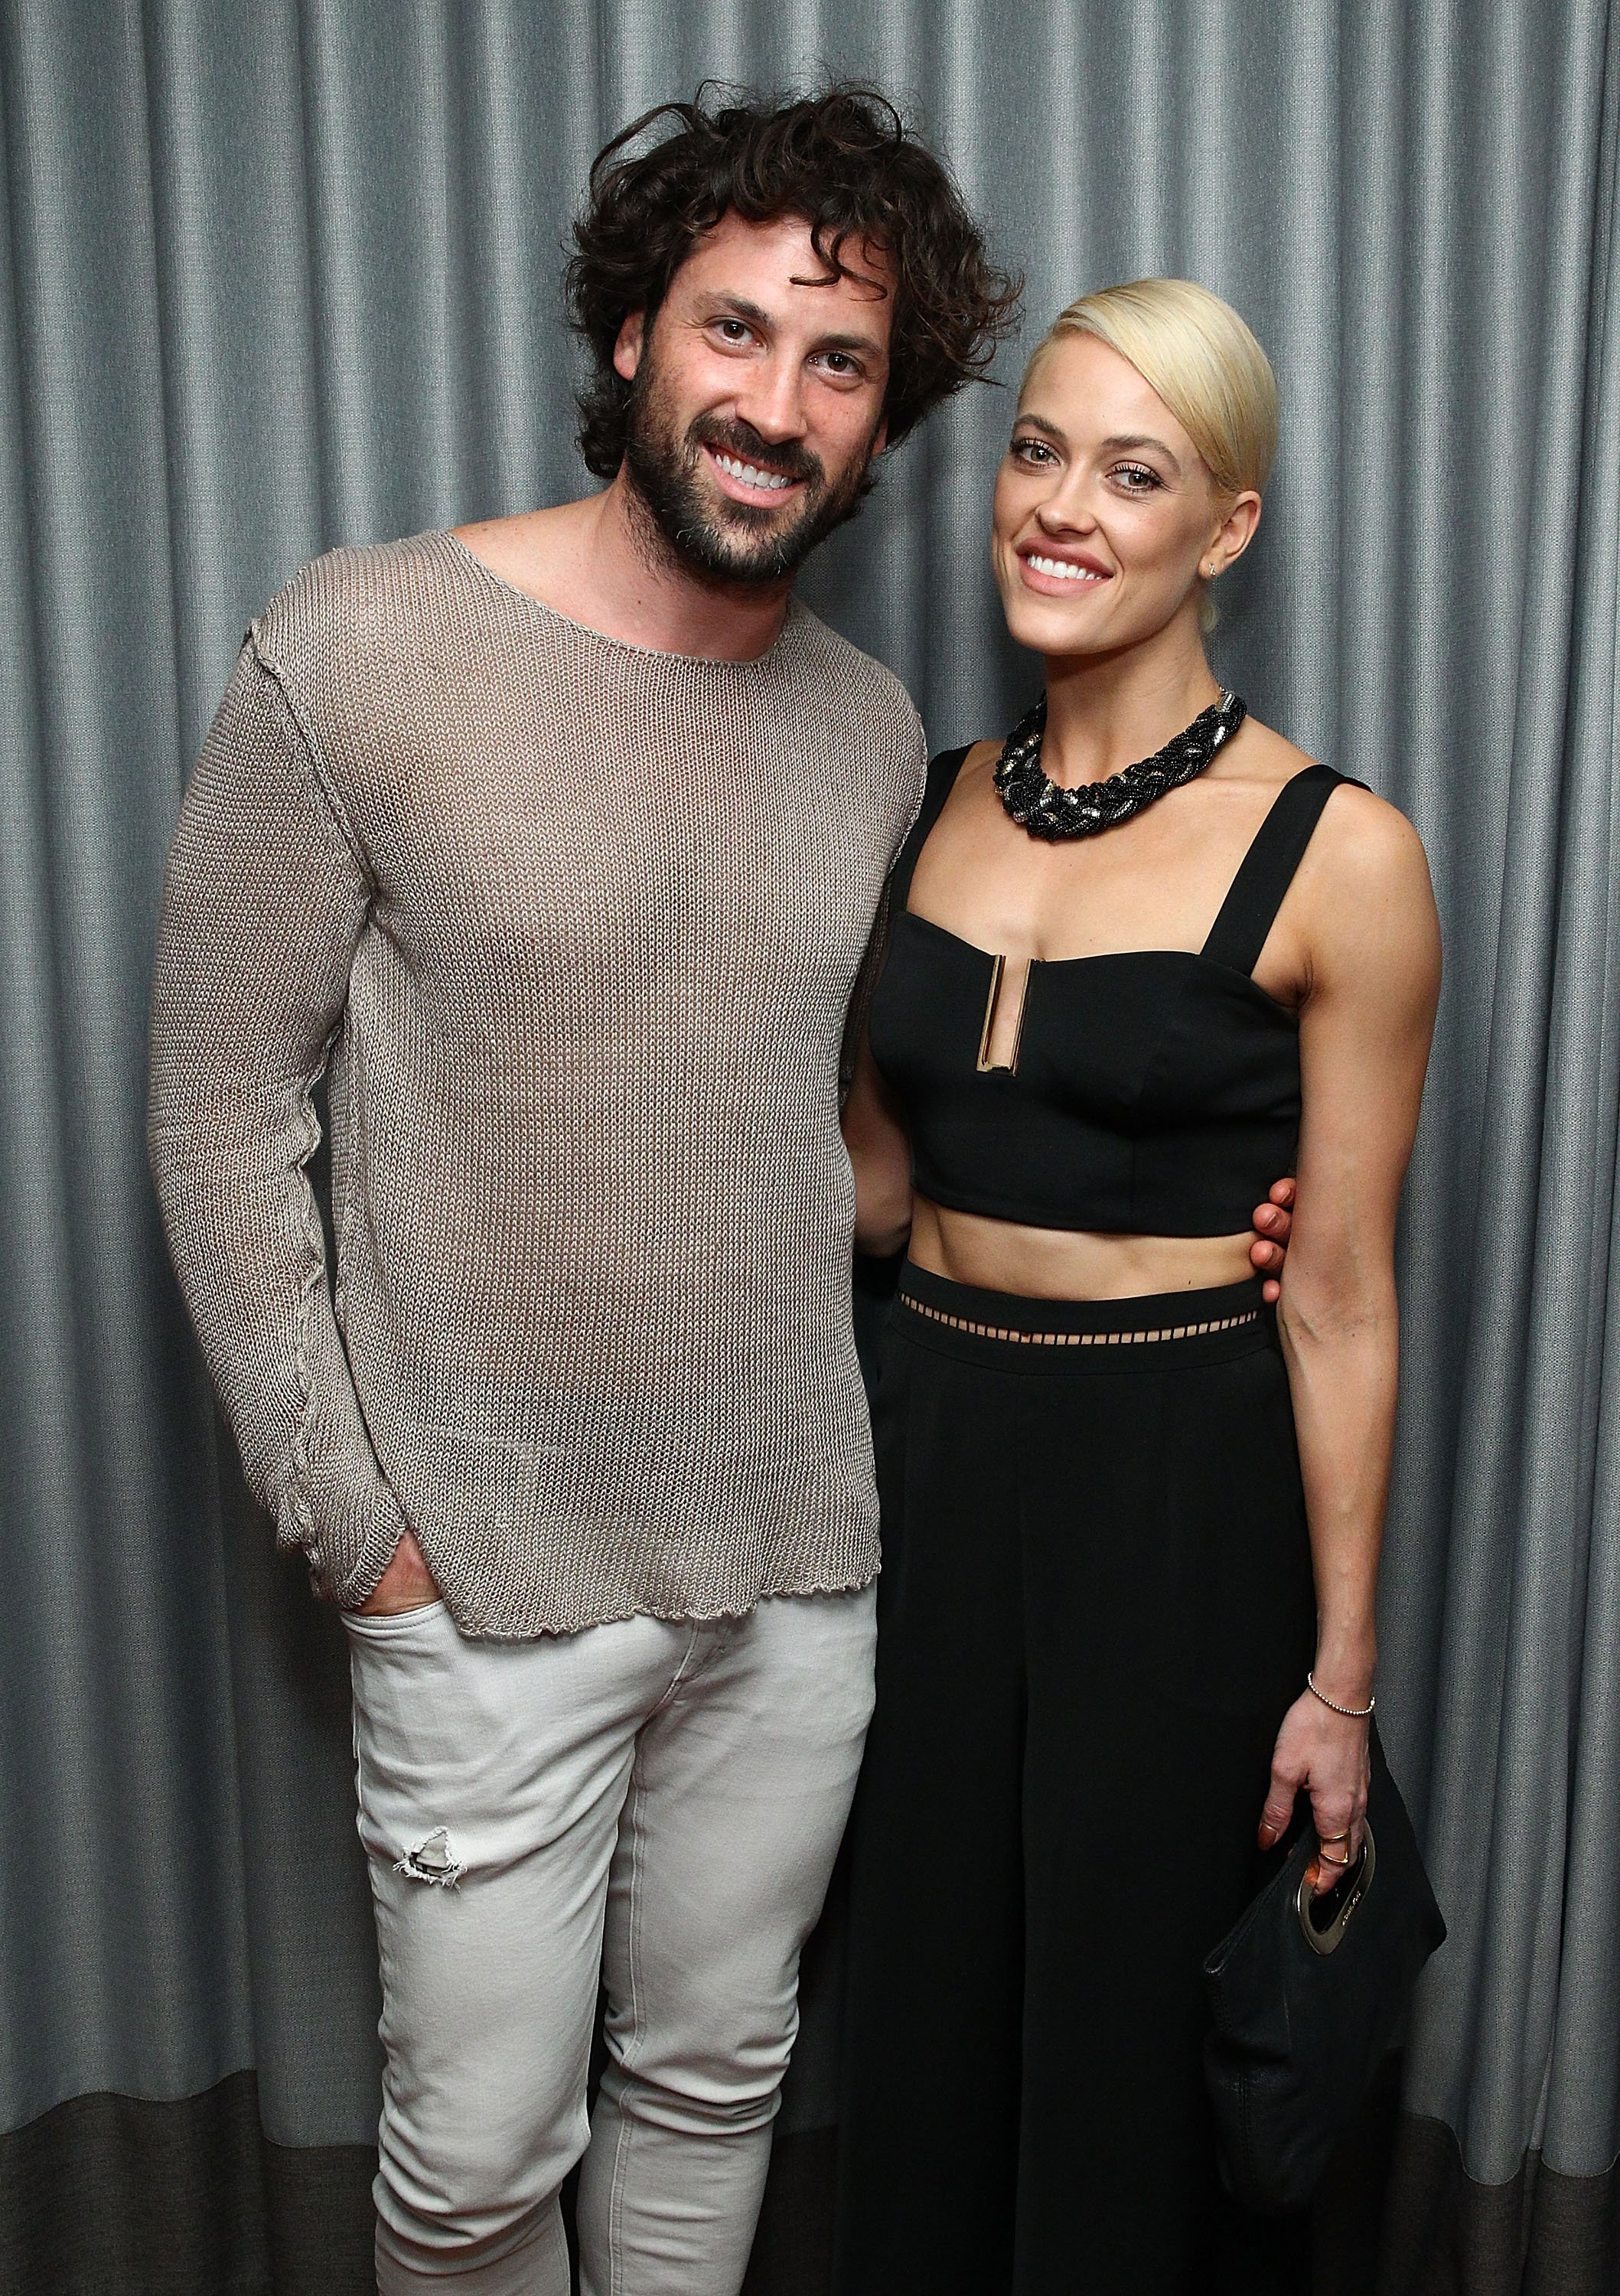 Maksim Chmerkovskiy and Peta Murgatroyd attend the Samsung celebration for Alec Monopoly's LEVEL Headphones Collaboration on December 2, 2015. | Source: Getty Images